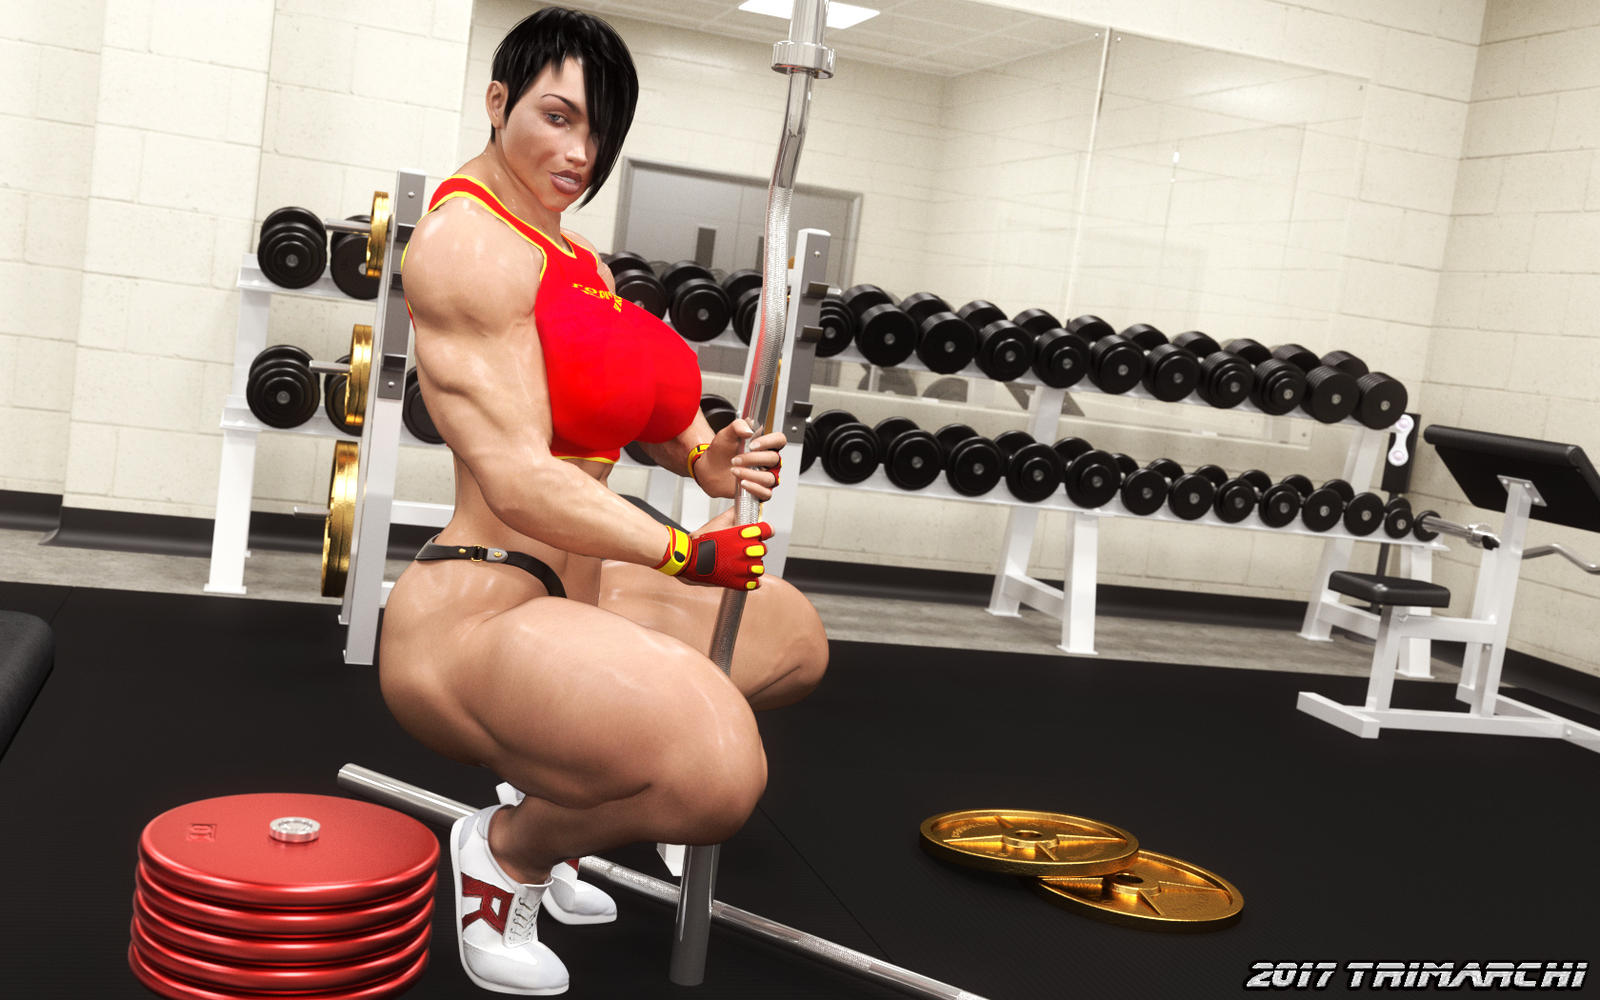 Olga's High-Intensity Workout, stage four by Soviet-Superwoman